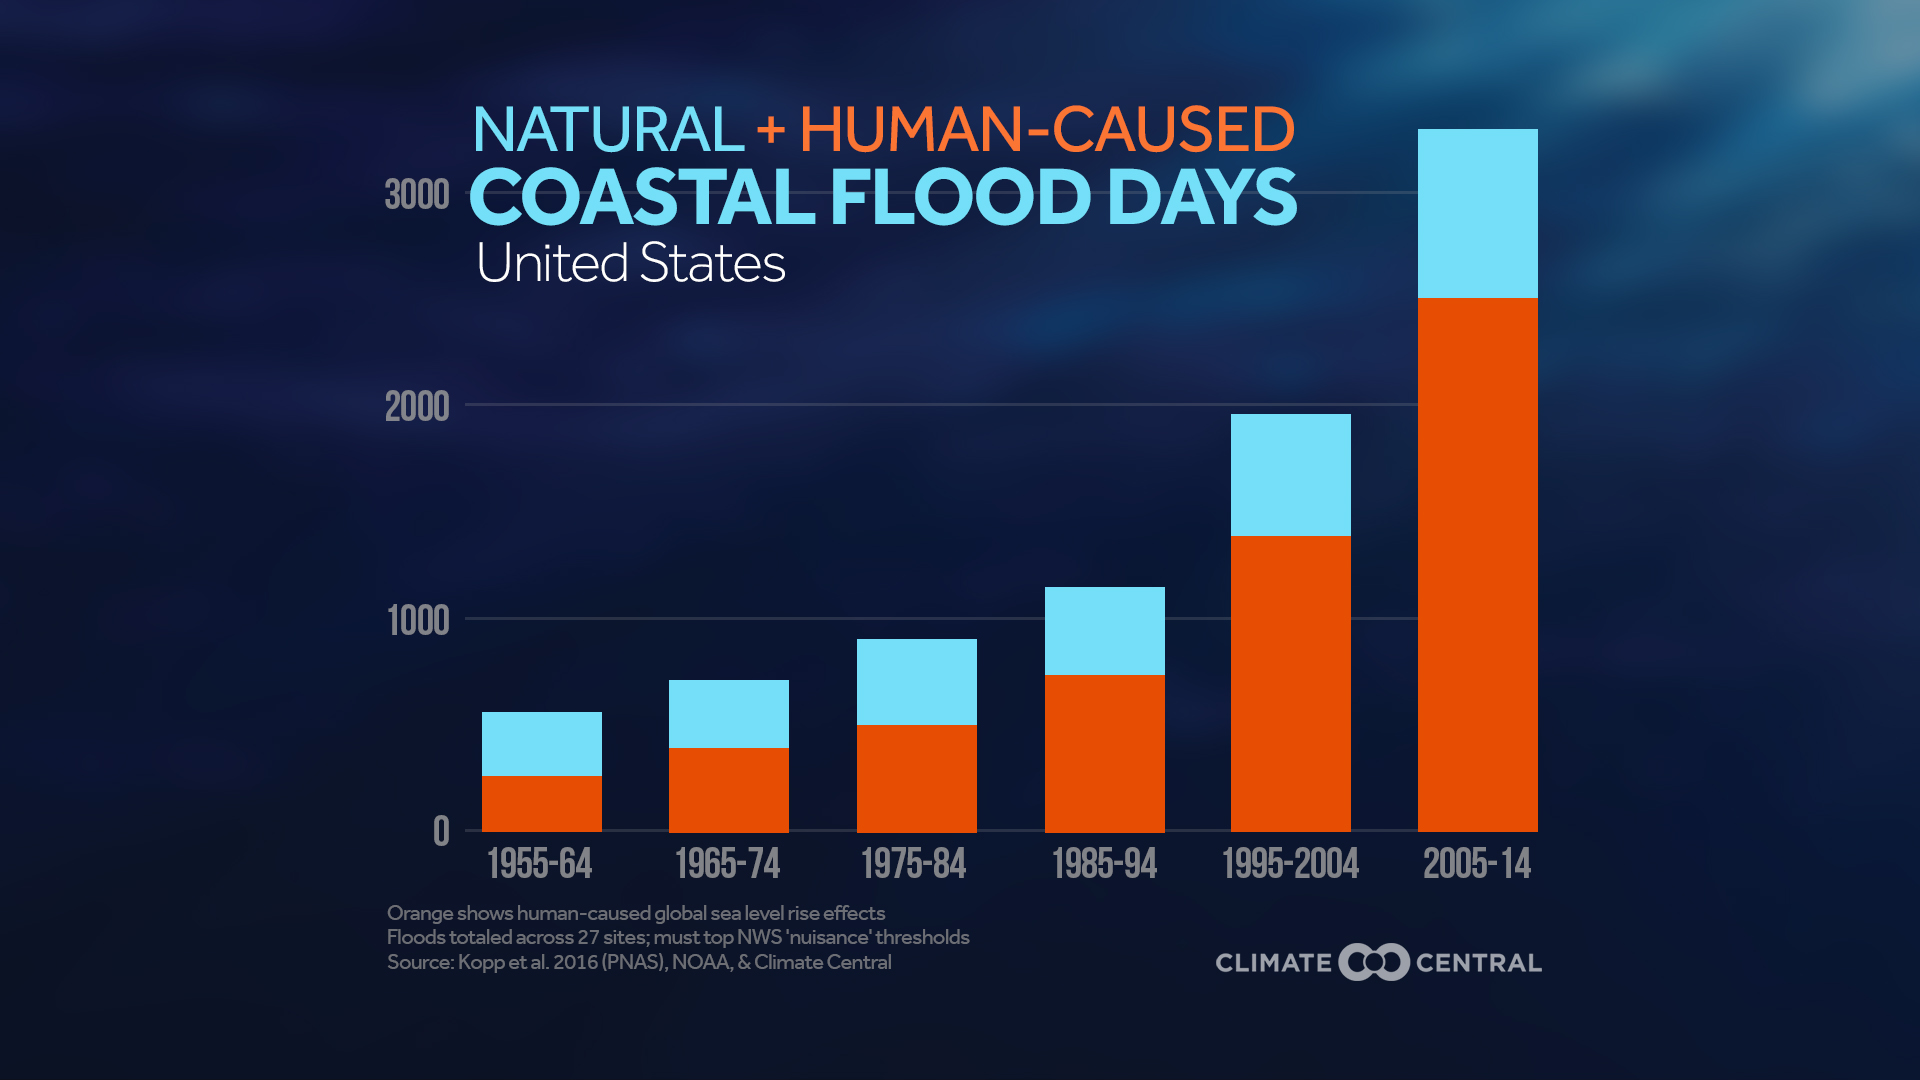 Natural and Human-Caused COASTAL FLOOD DAYS